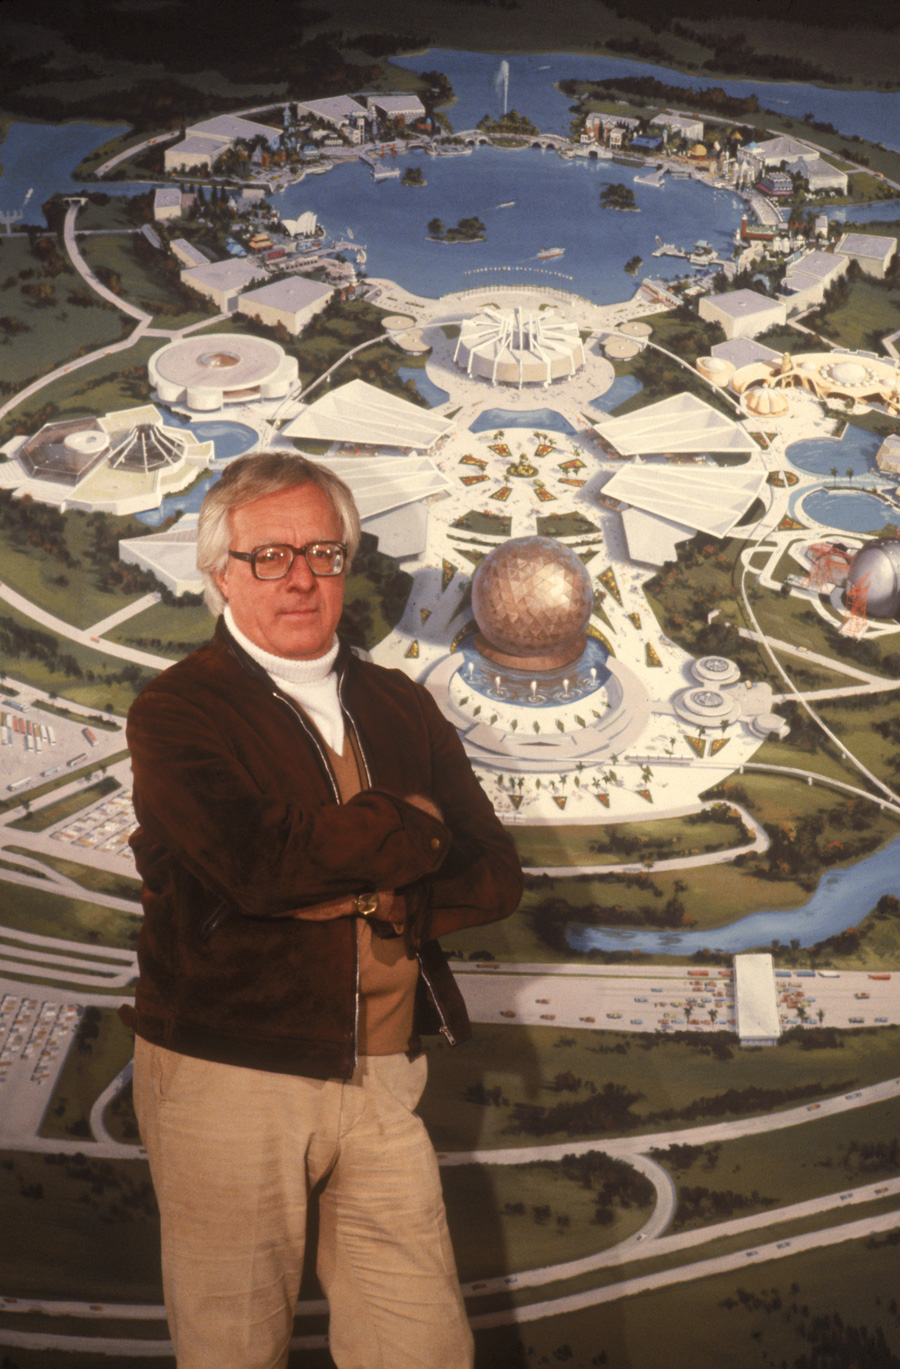 the future and future worlds in the works of ray bradbury Giant of science fiction writing fueled renewed interest in futurist literature with fahrenheit 451 among scores of other works.